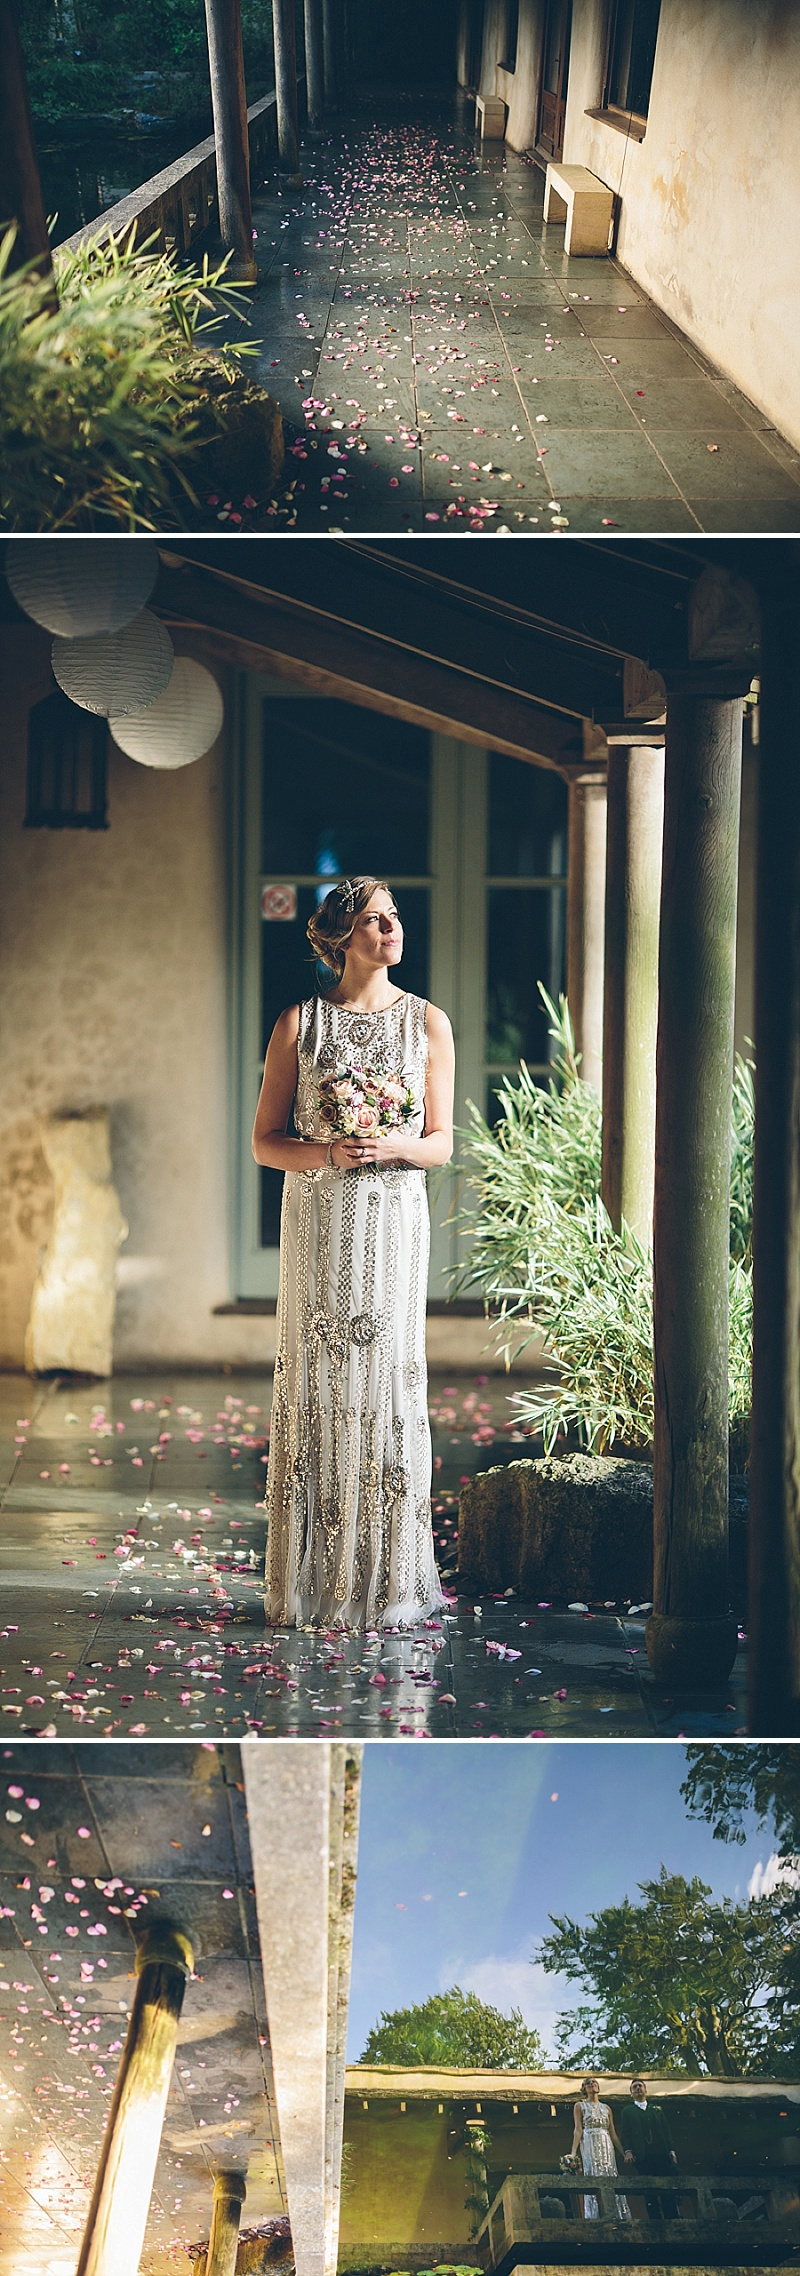 Art Deco and 1920s Inspired Wedding At The Matara Centre Gloucestershire With Bride In Joy By Jenny Packham and Bridesmaids in No 1 by Jenny Packham At Debenhams With Vintage Details and Speakeasy Themed Cocktails 9